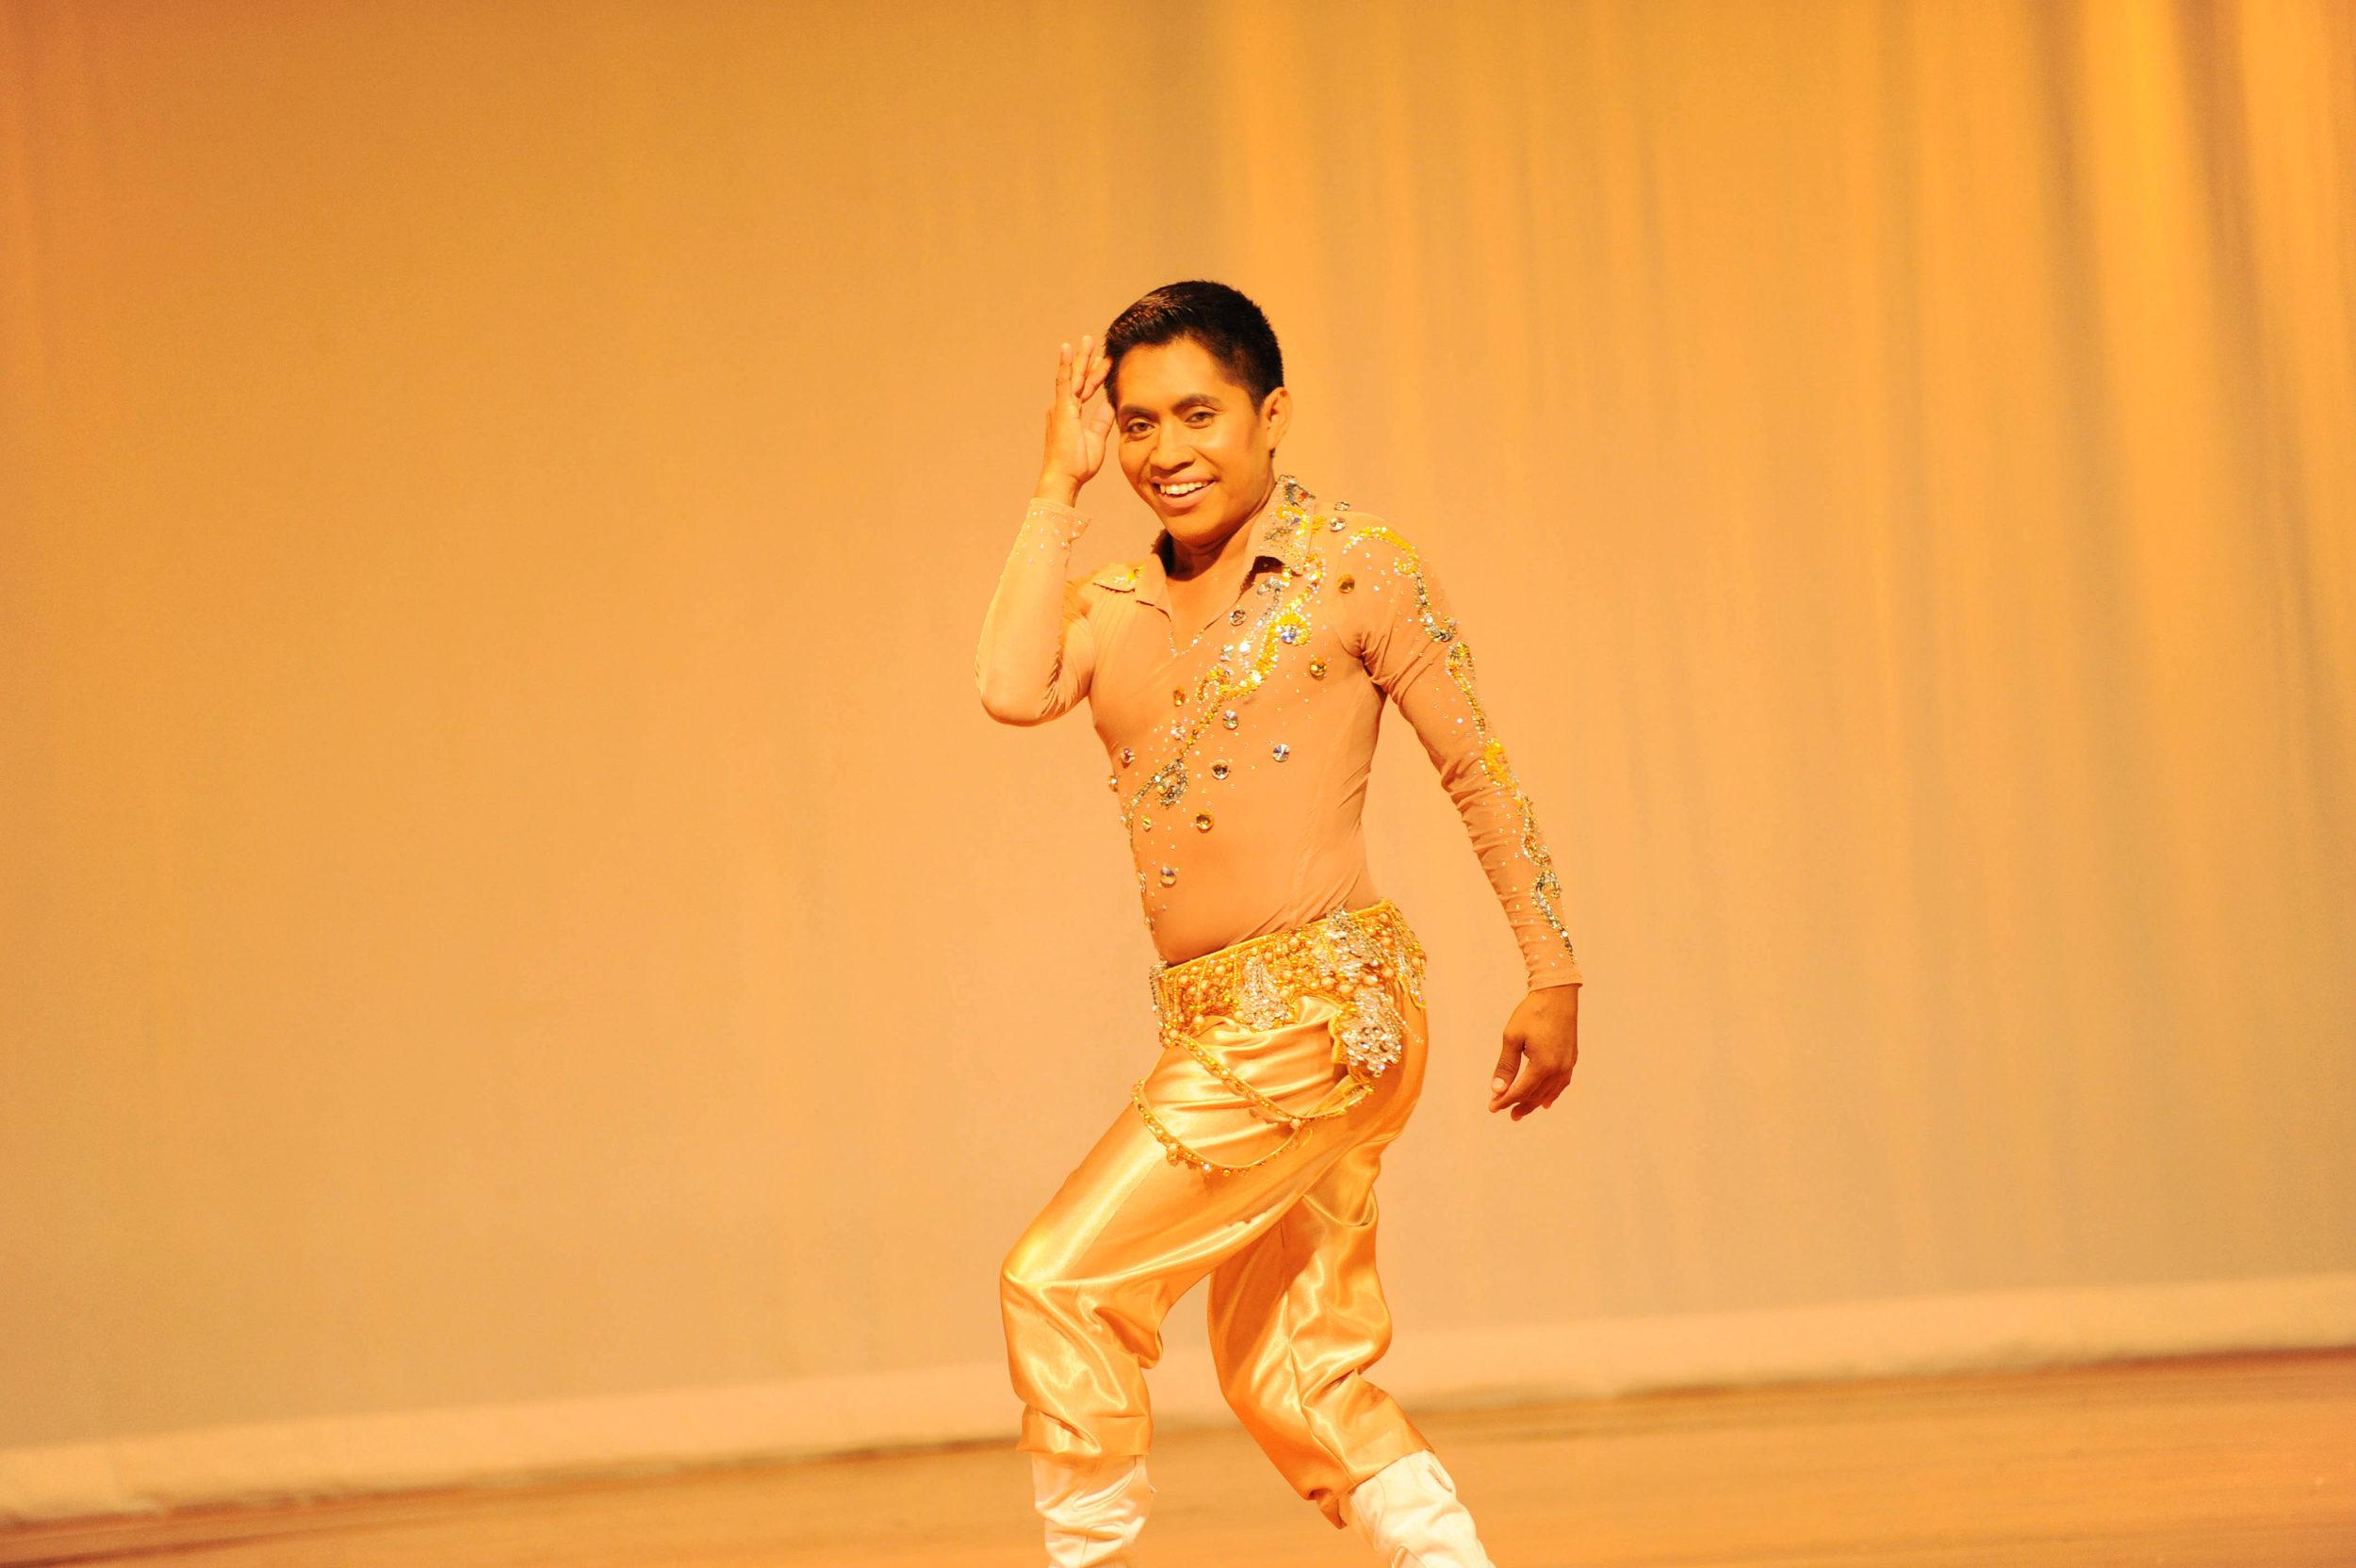 Andrus Ramir performing at Arabia: A Journey Through Dance